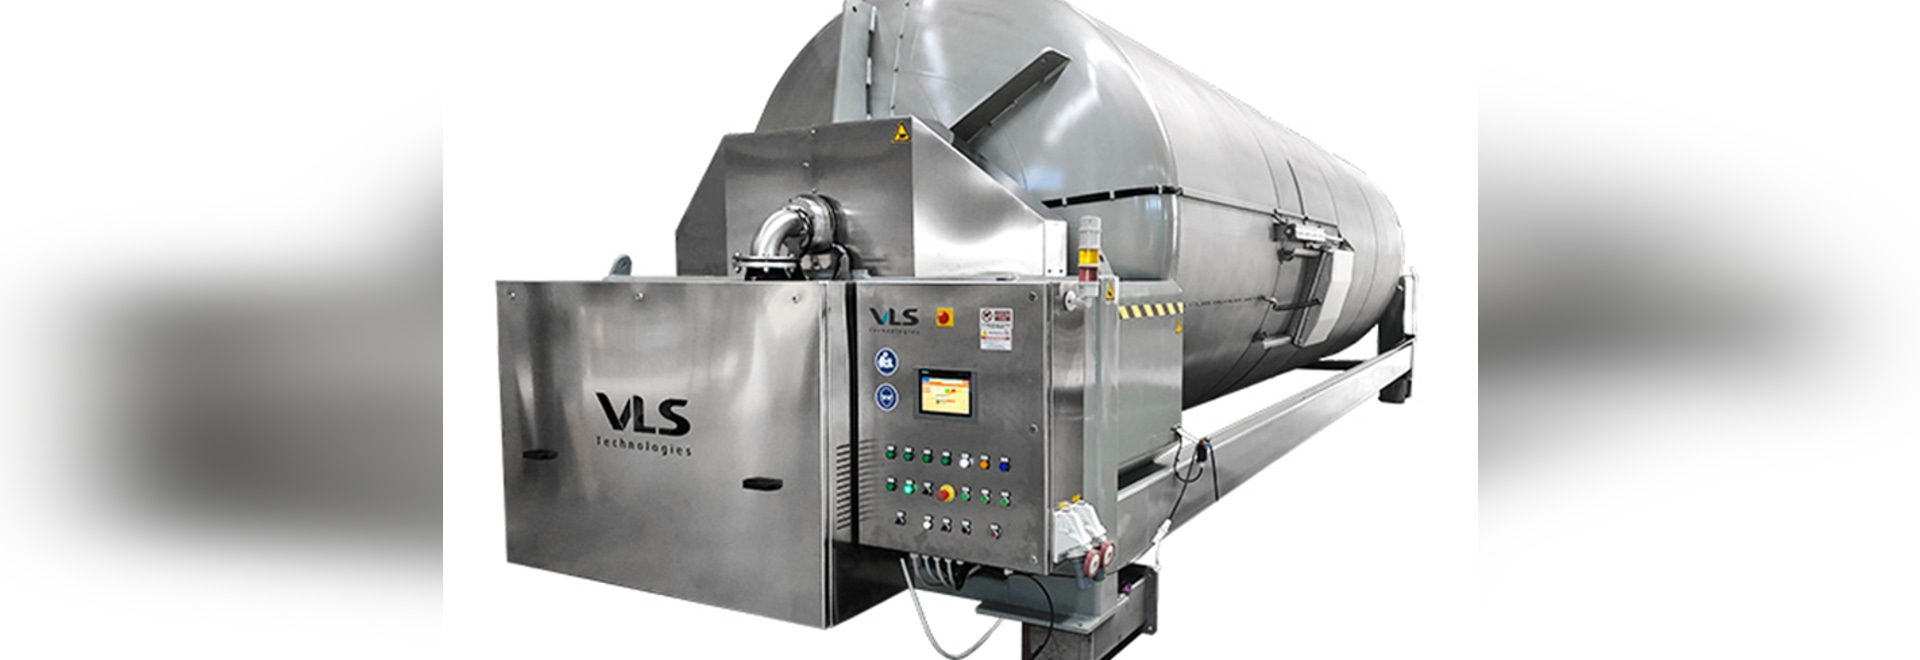 A 440hl pneumatic press by VLS Technologies has been delivered in Hungary